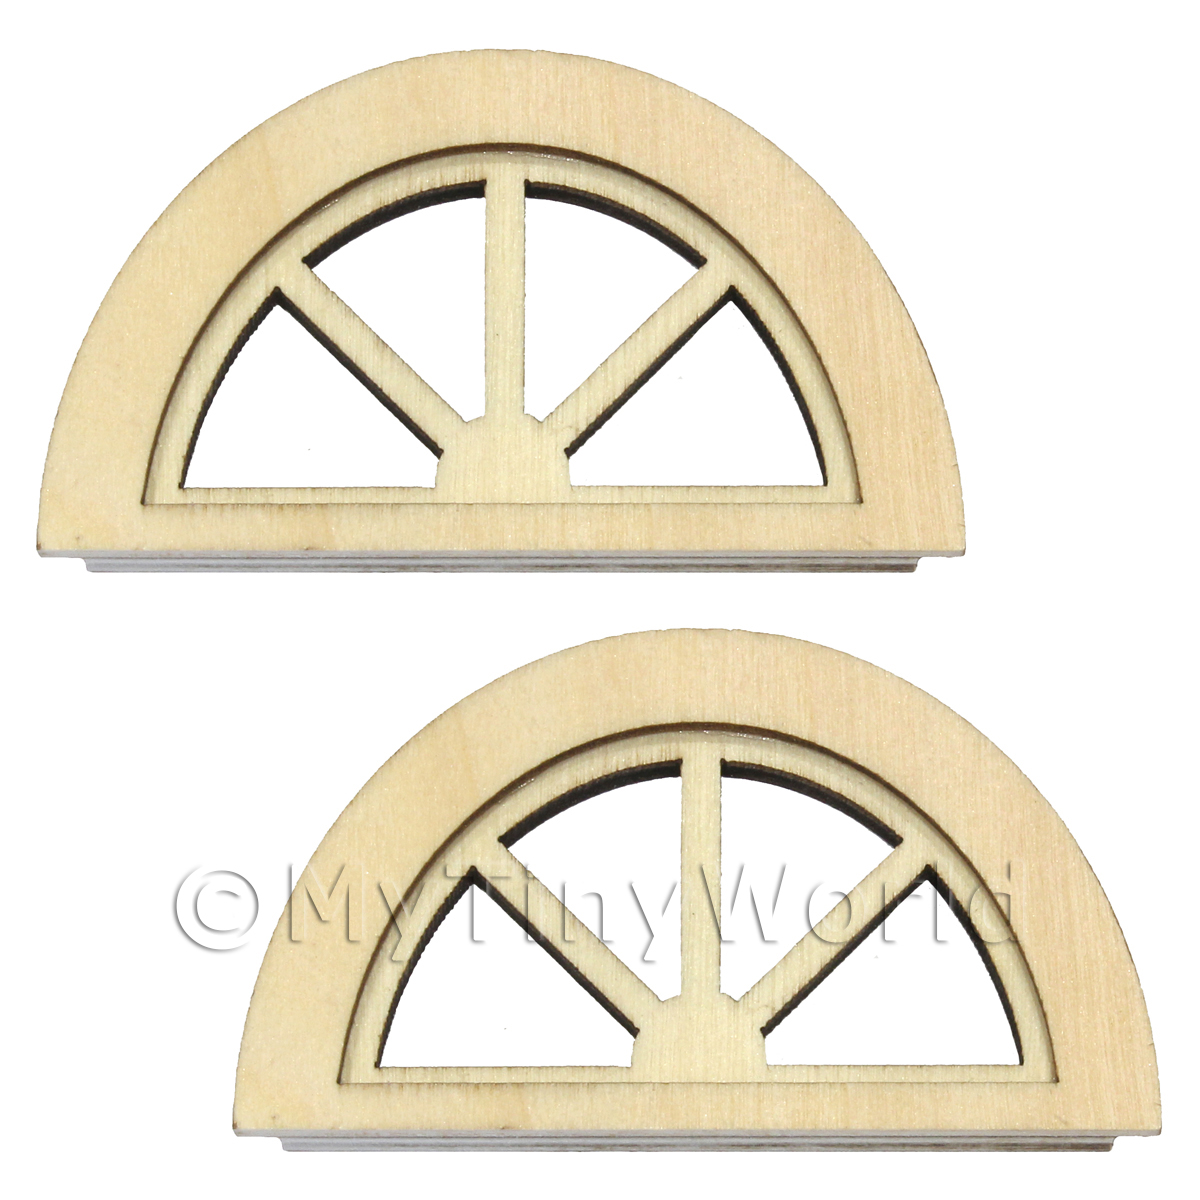 Pair Of Dolls House Miniature Wood Half Moon Windows